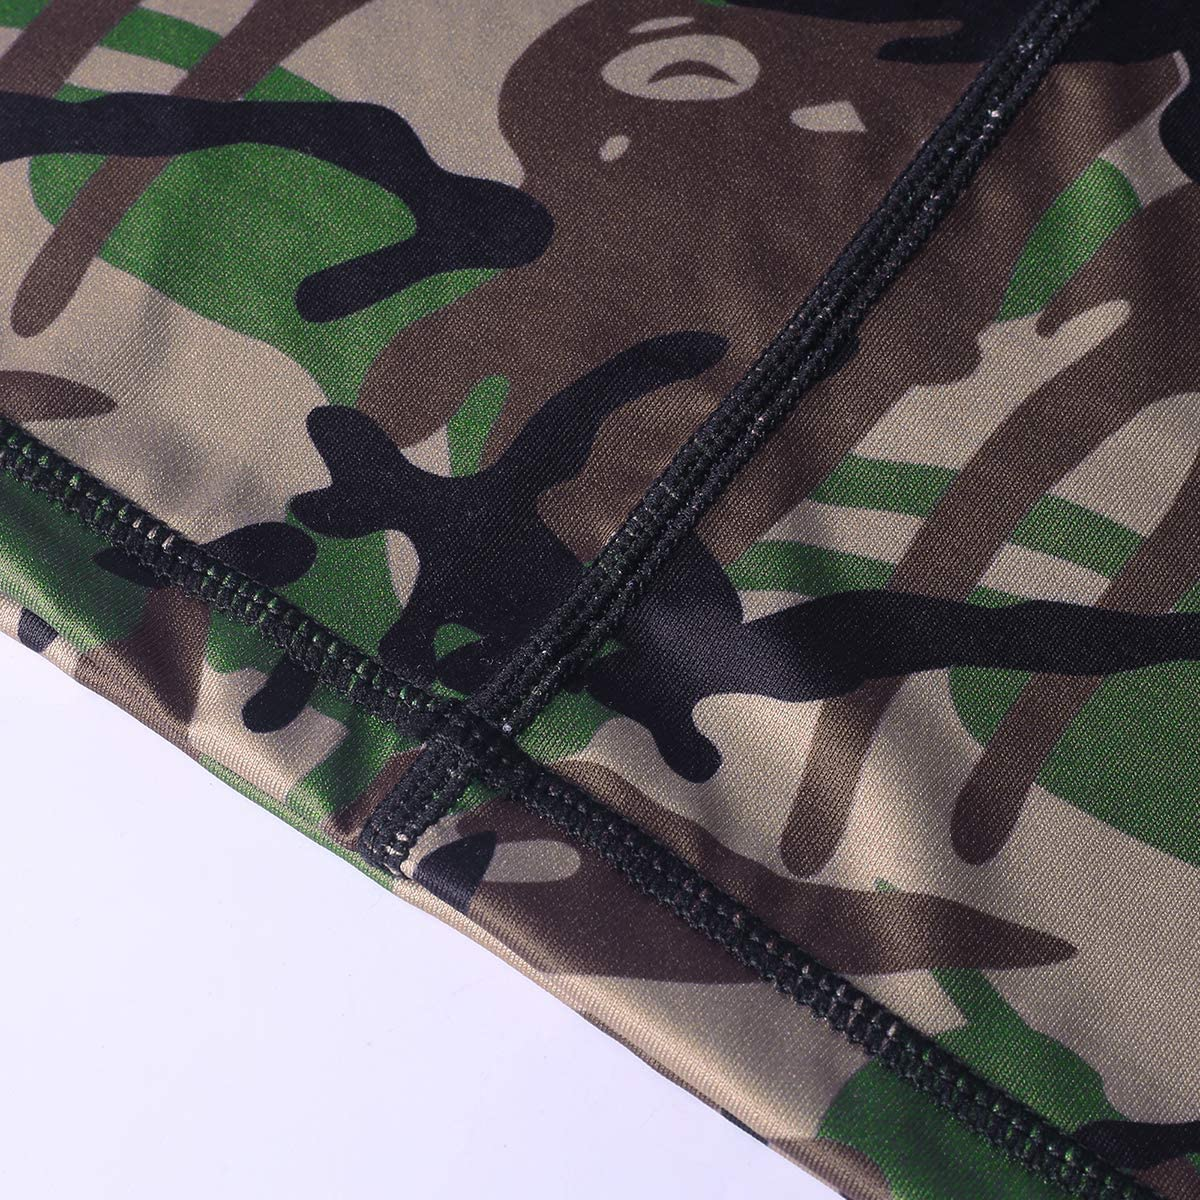 AXBXCX Camouflage Breathable Neck Gaiter Face Mask Protection for Outdoor Sport